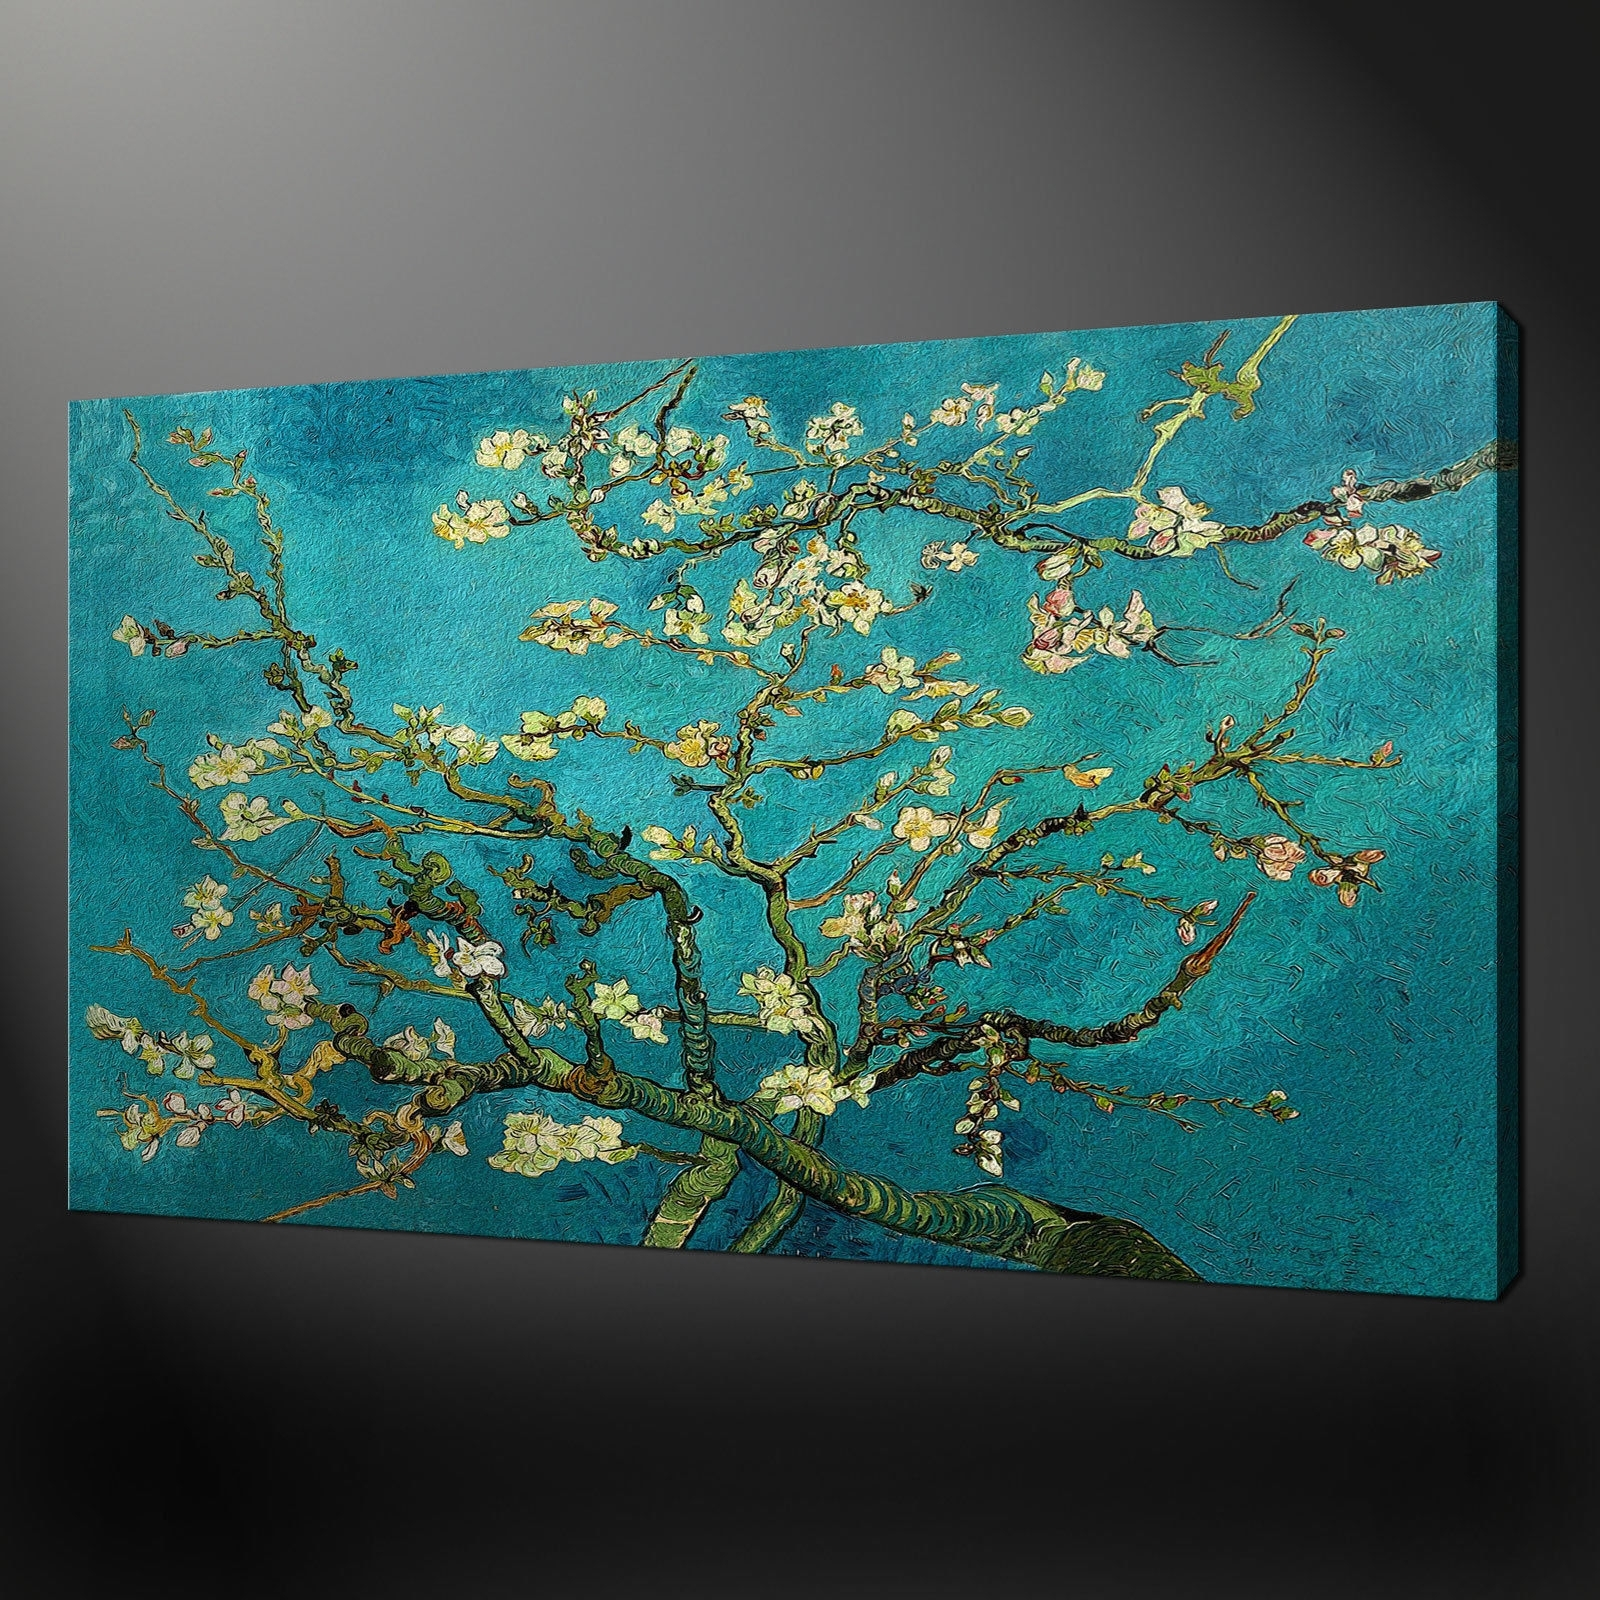 Almond Tree Van Gogh Regarding To Large Canvas Teal Wall Art Simple regarding Oversized Teal Canvas Wall Art (Image 2 of 20)